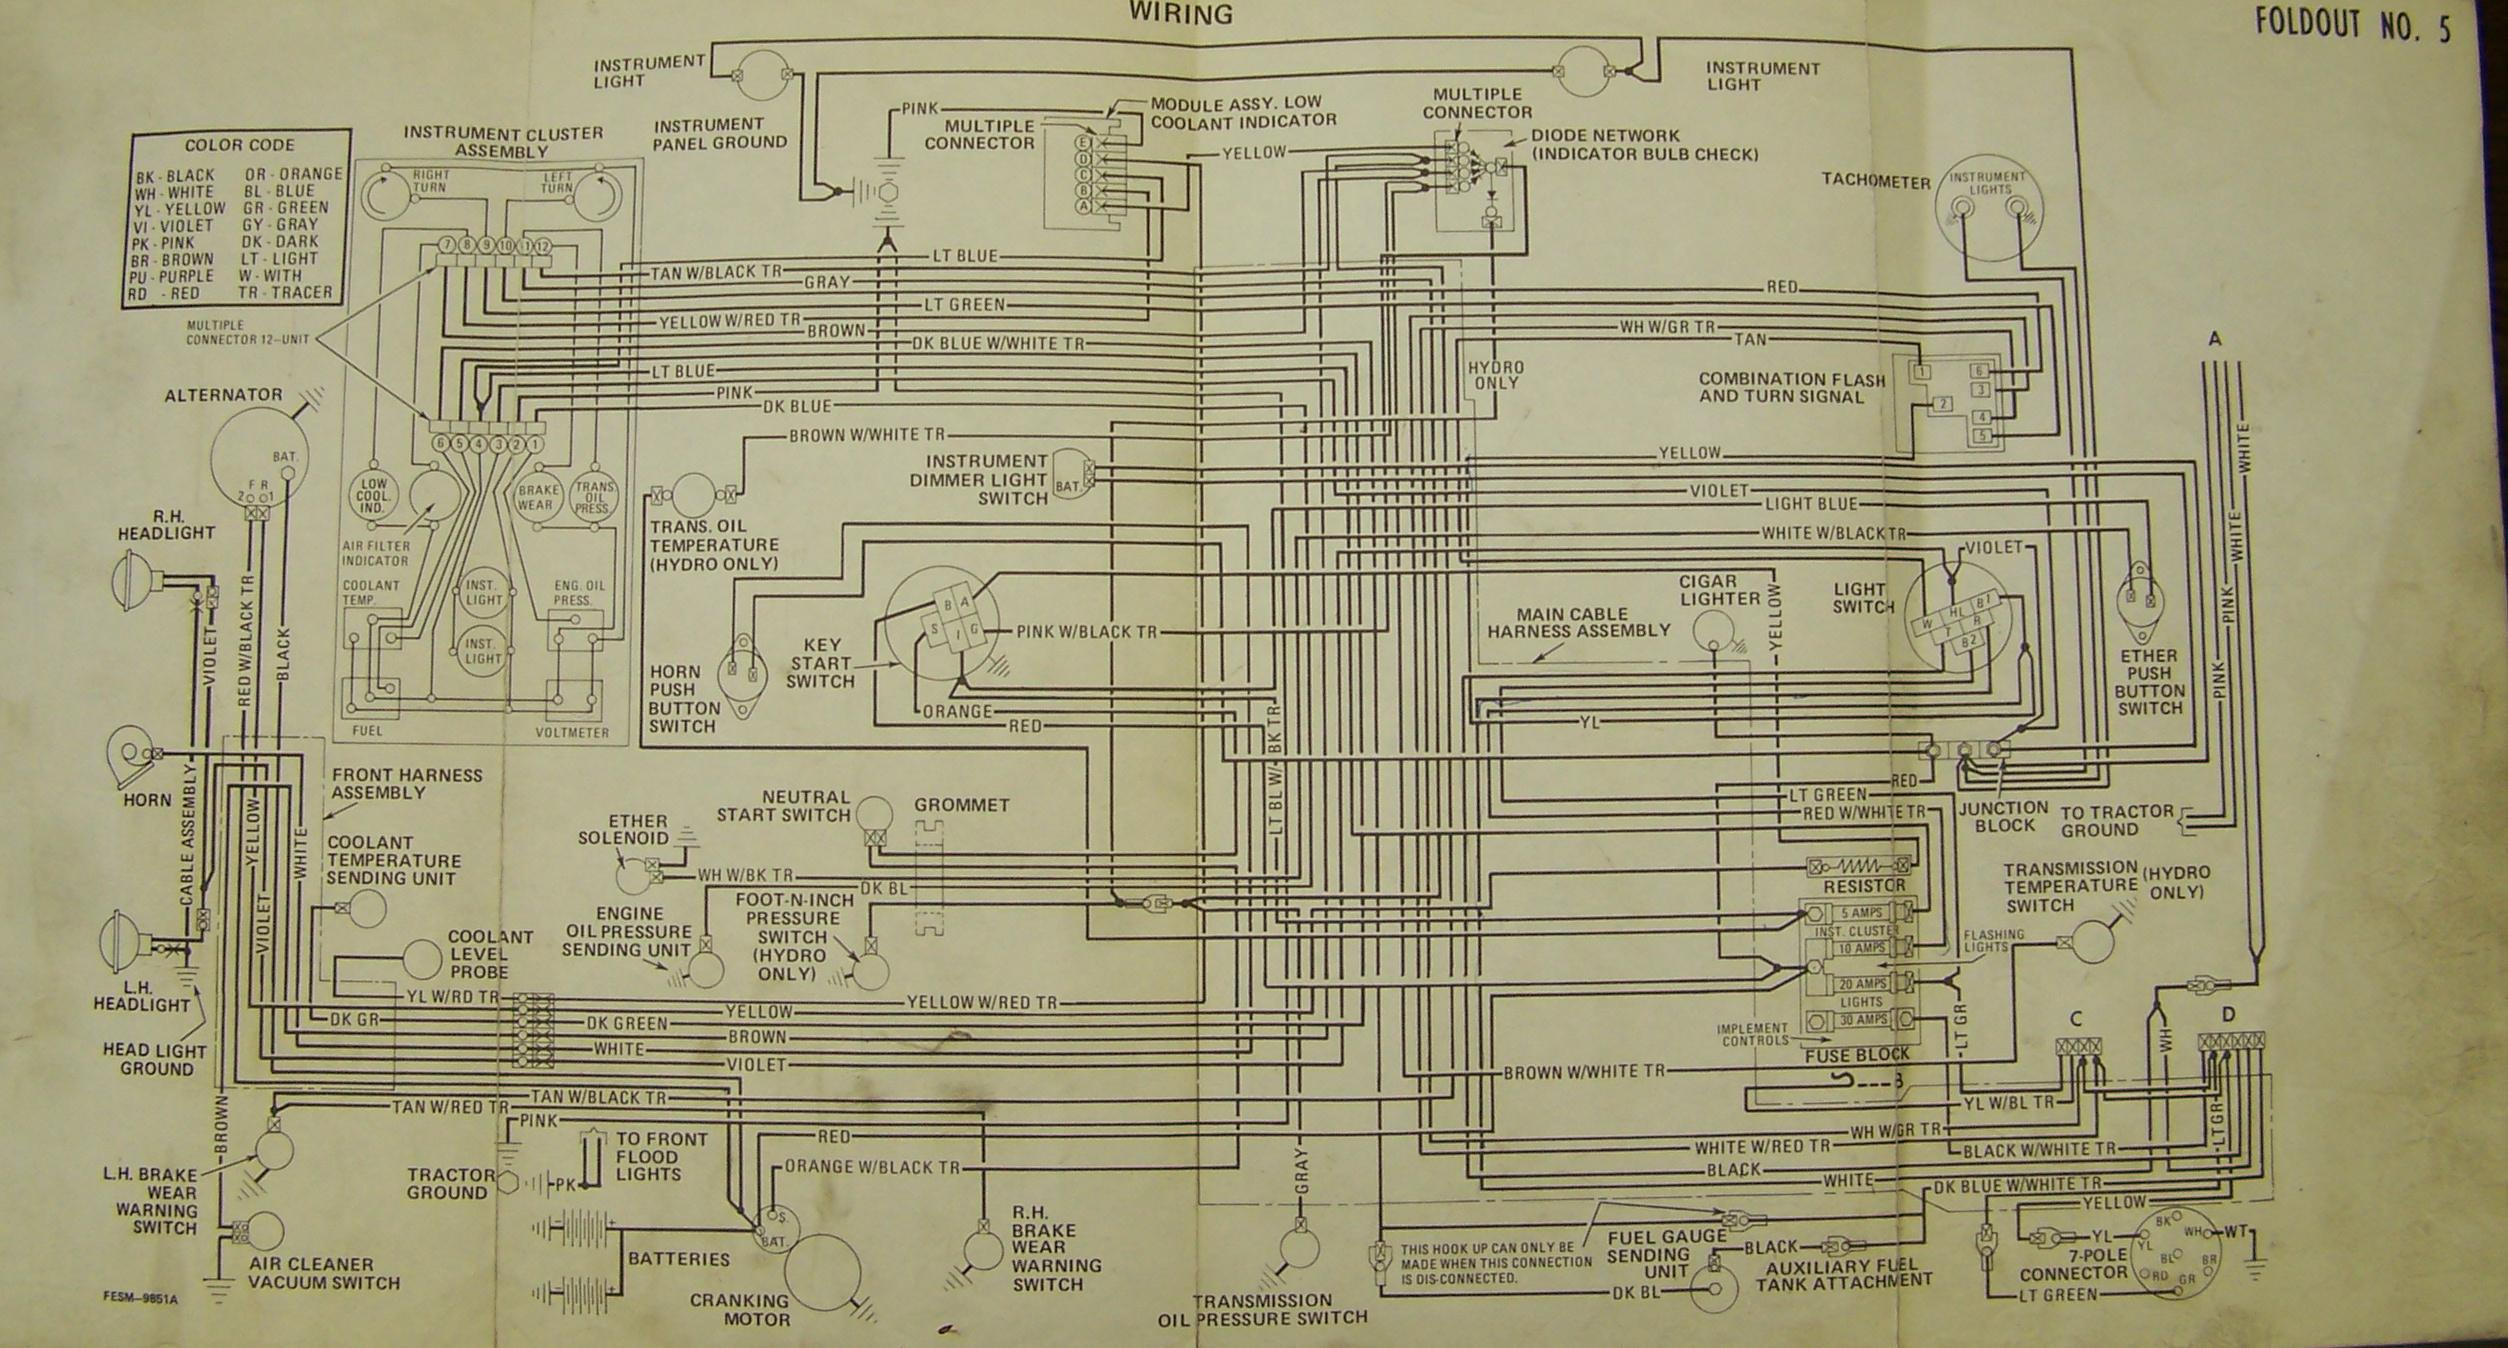 86series5 ih tractor wiring diagram ih tractor power steering \u2022 free wiring international 1086 wiring diagram at reclaimingppi.co